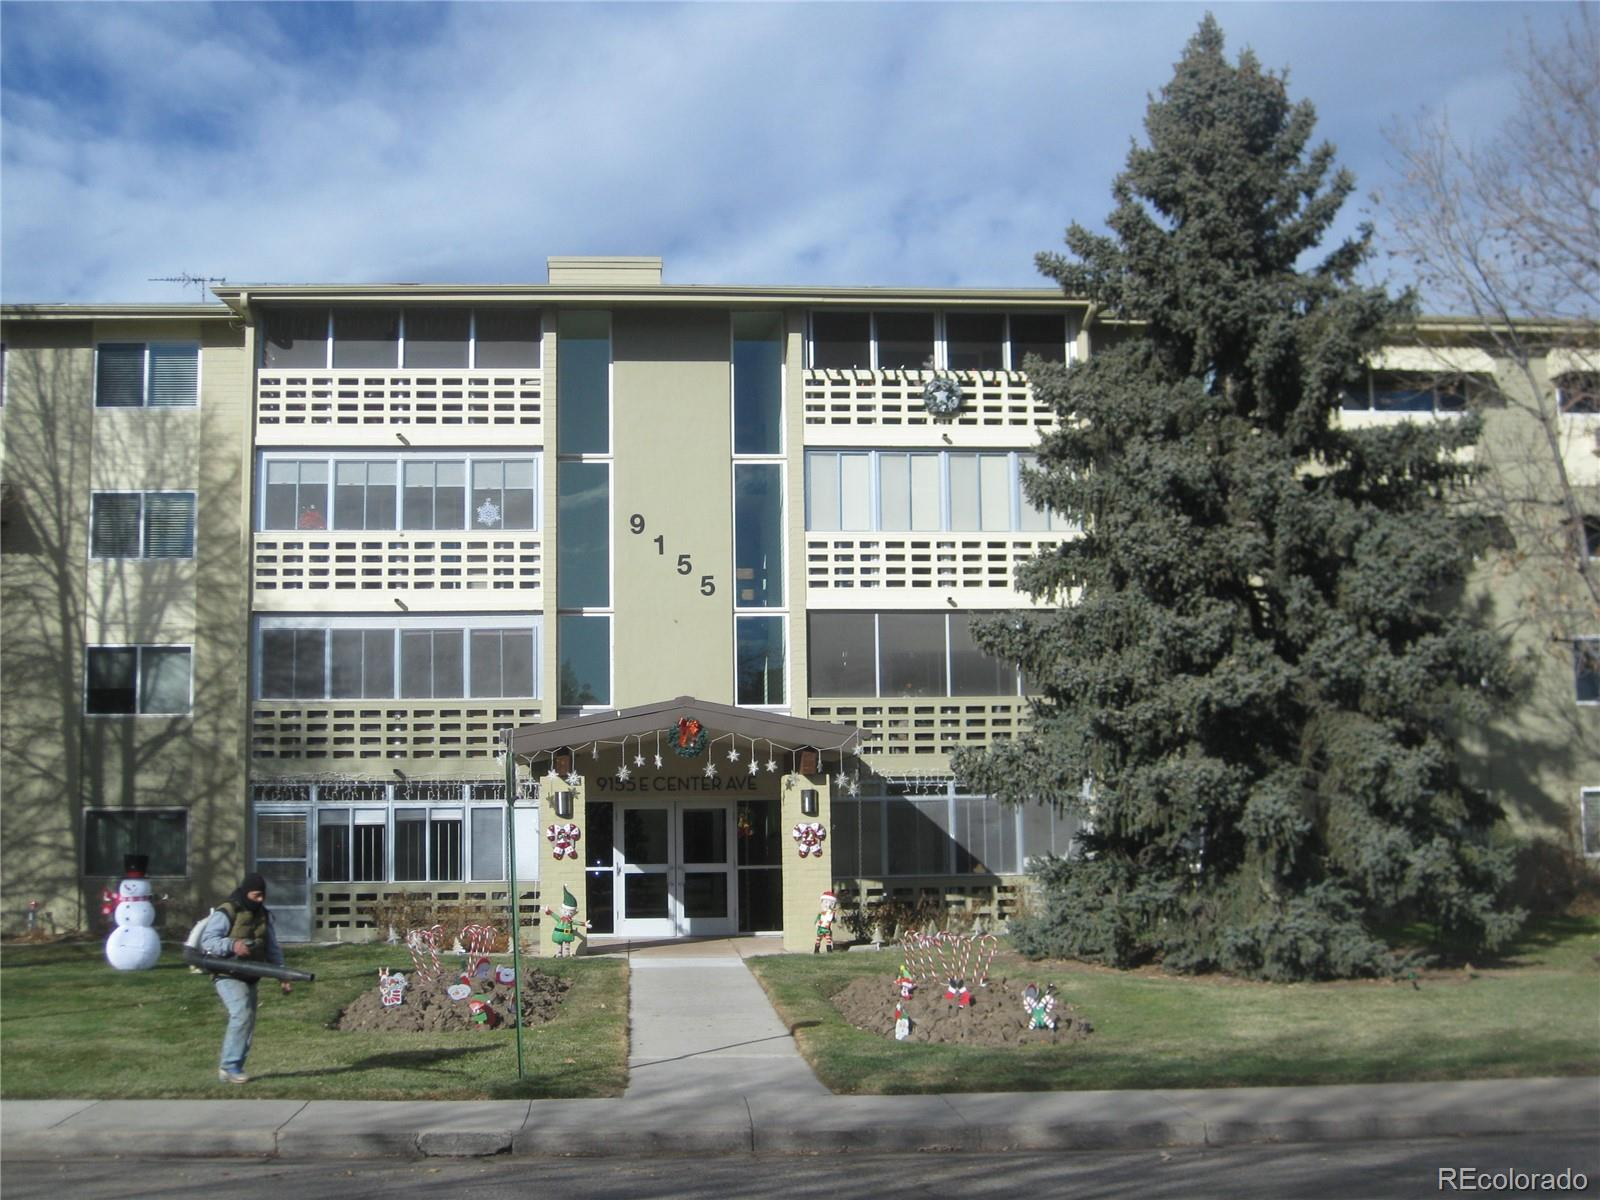 Beautifully modernized and spacious 2 bedroom plus a 3rd bonus room, 2 bath condominium.  The second bedroom serves dual purpose with an equisite built-out office and murphy bed to serve those working from home.  The kitchen has been thoughtfully remodeled to allow an open feel and boasts a kitchen island/breakfast seating. The extra bonus room/flex/work space is adjacent to the kitchen and living room.  This virtually maintenance-free home overlooks a delightful landscaped community with accommodations to stay active. There is a detached single car garage conveniently located with one opener included. The laundry is just down the hall on the same level.  In addition to the gym, there are classes and activities Monday through Saturday in the Community Center including fitness, art, dancing and many other classes along with a pool and card tables.  One of the front range's foremost 55+ communities with walking paths along the Highline Canal Trail and around Windsor Lake.  Note: Taxes are included in the monthly HOA dues.